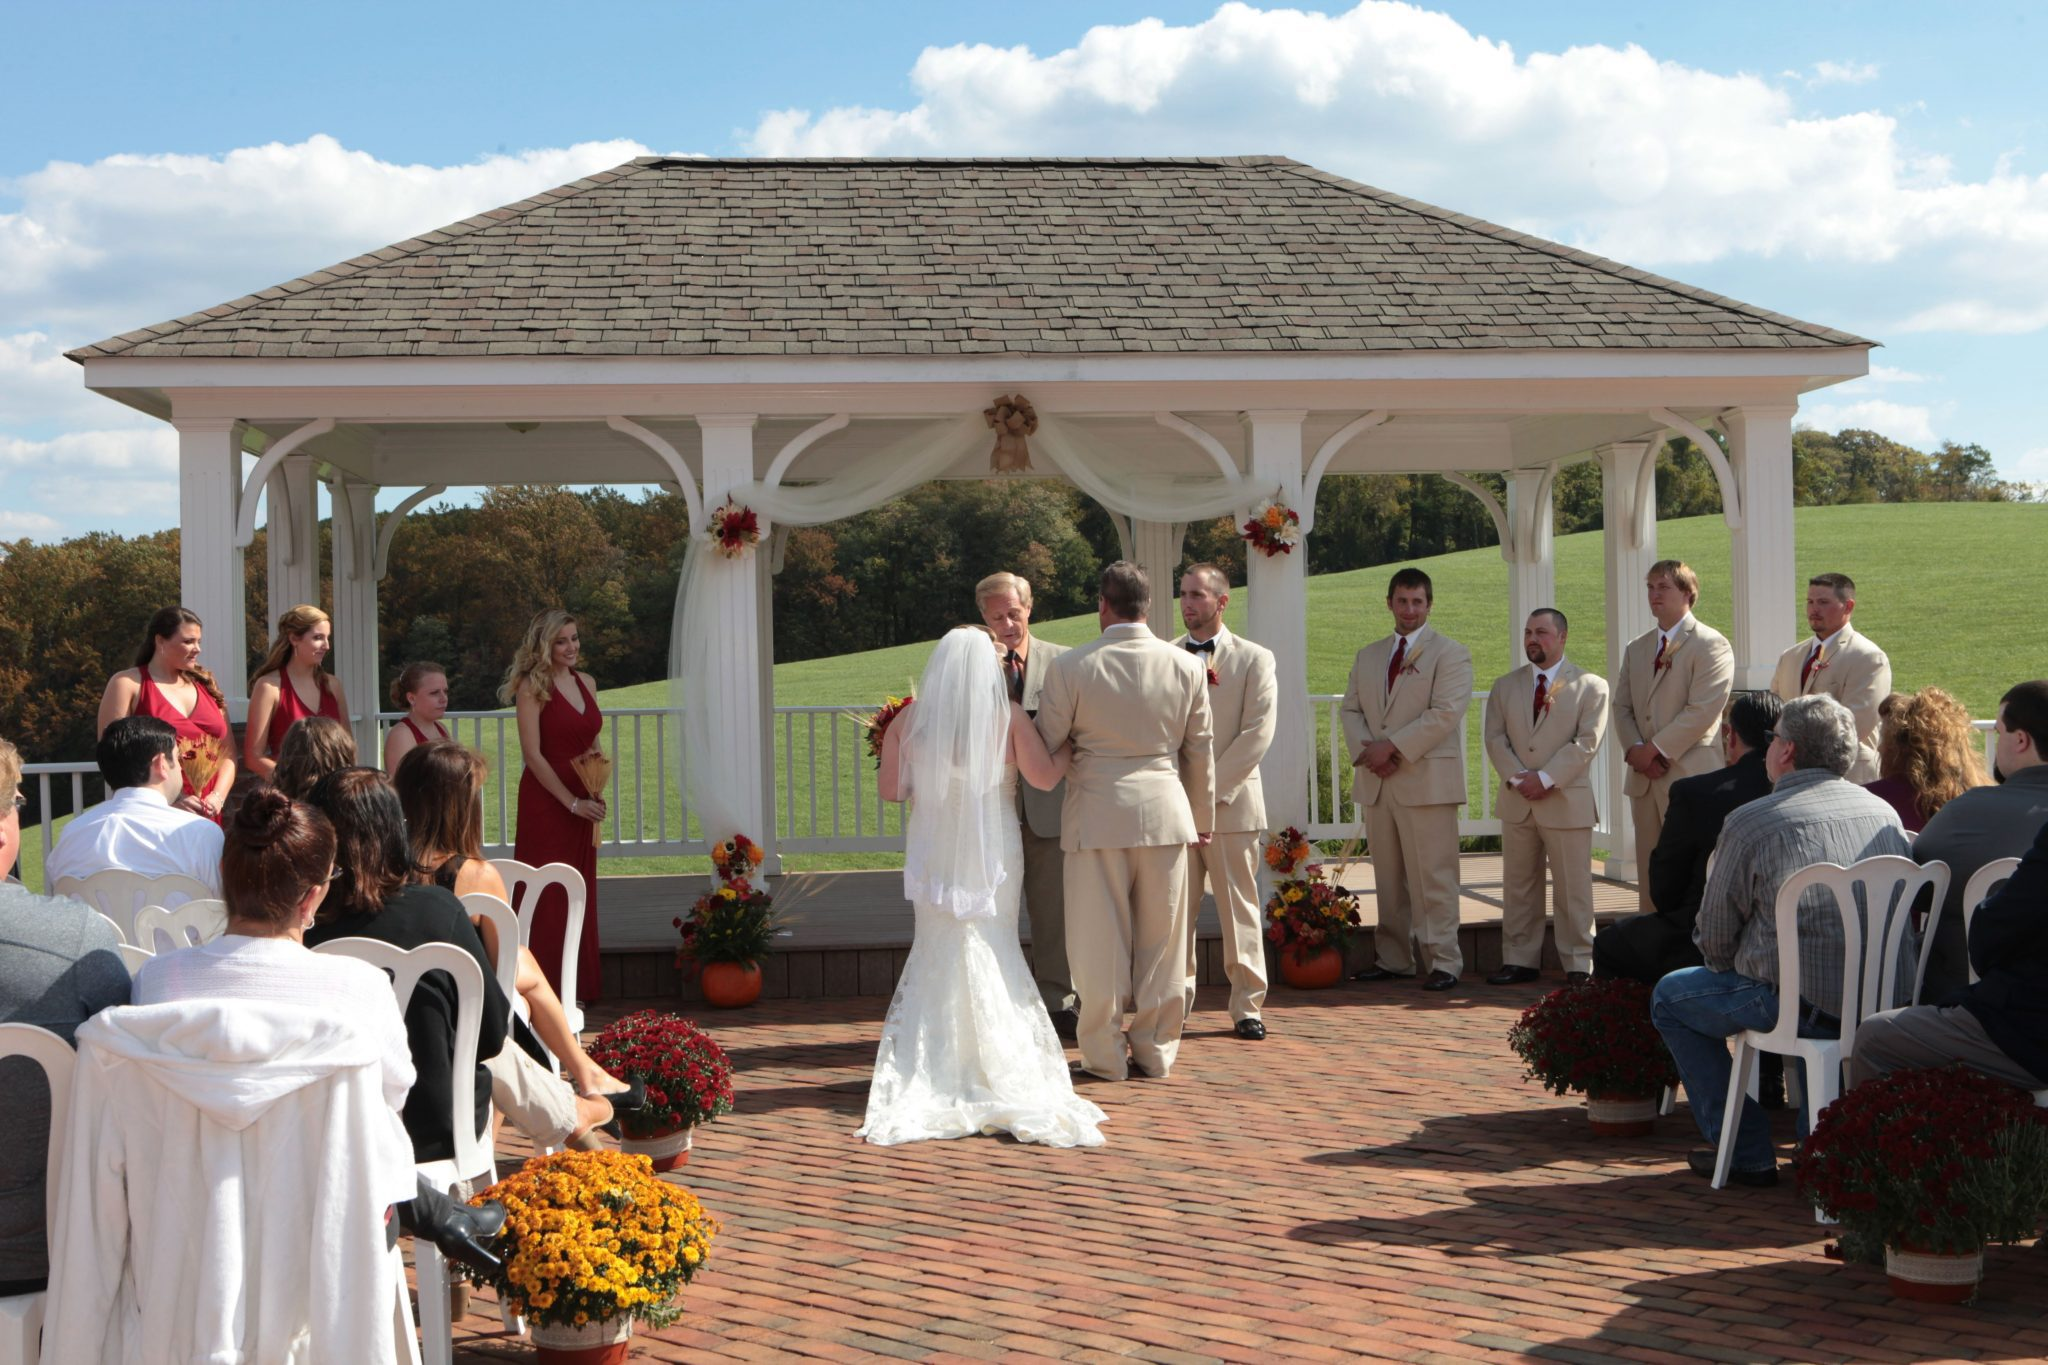 Outdoor wedding ceremony is held on covered pavilion